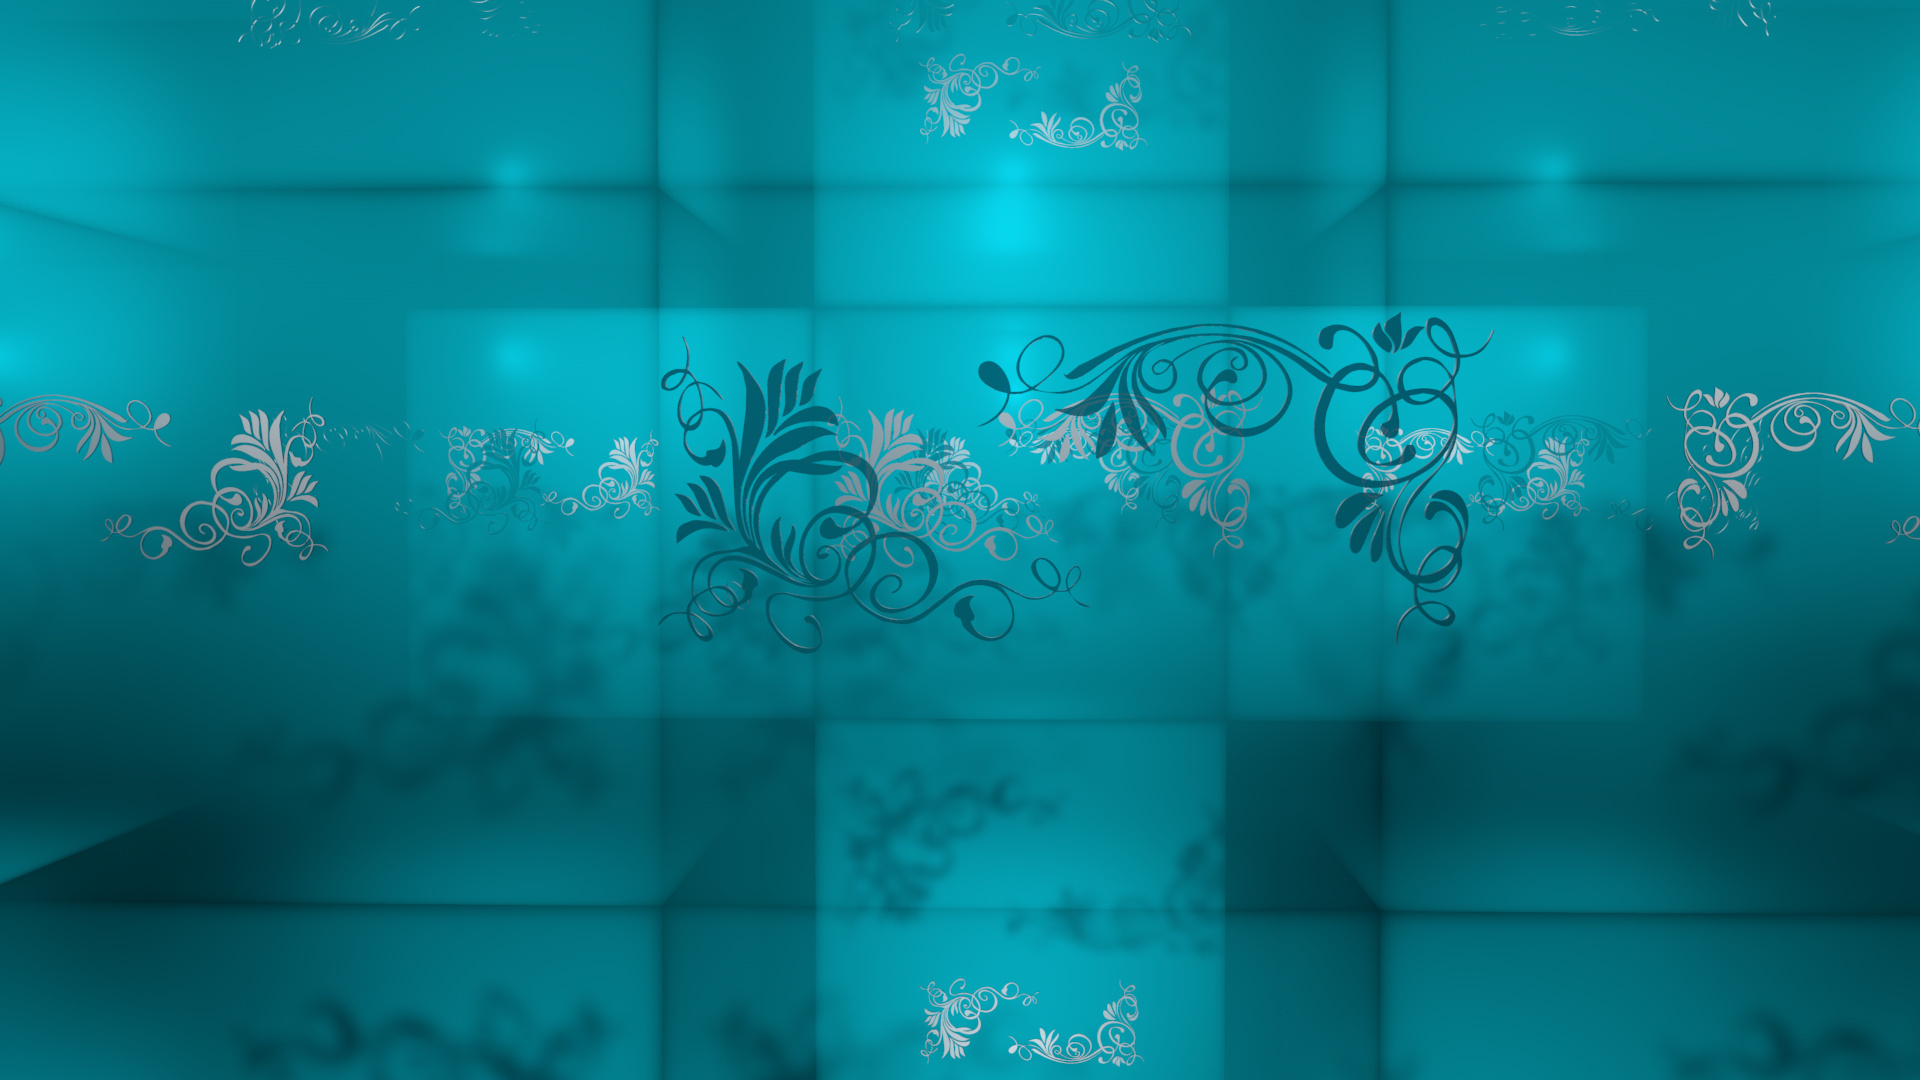 turquoise hd wallpaper - photo #4